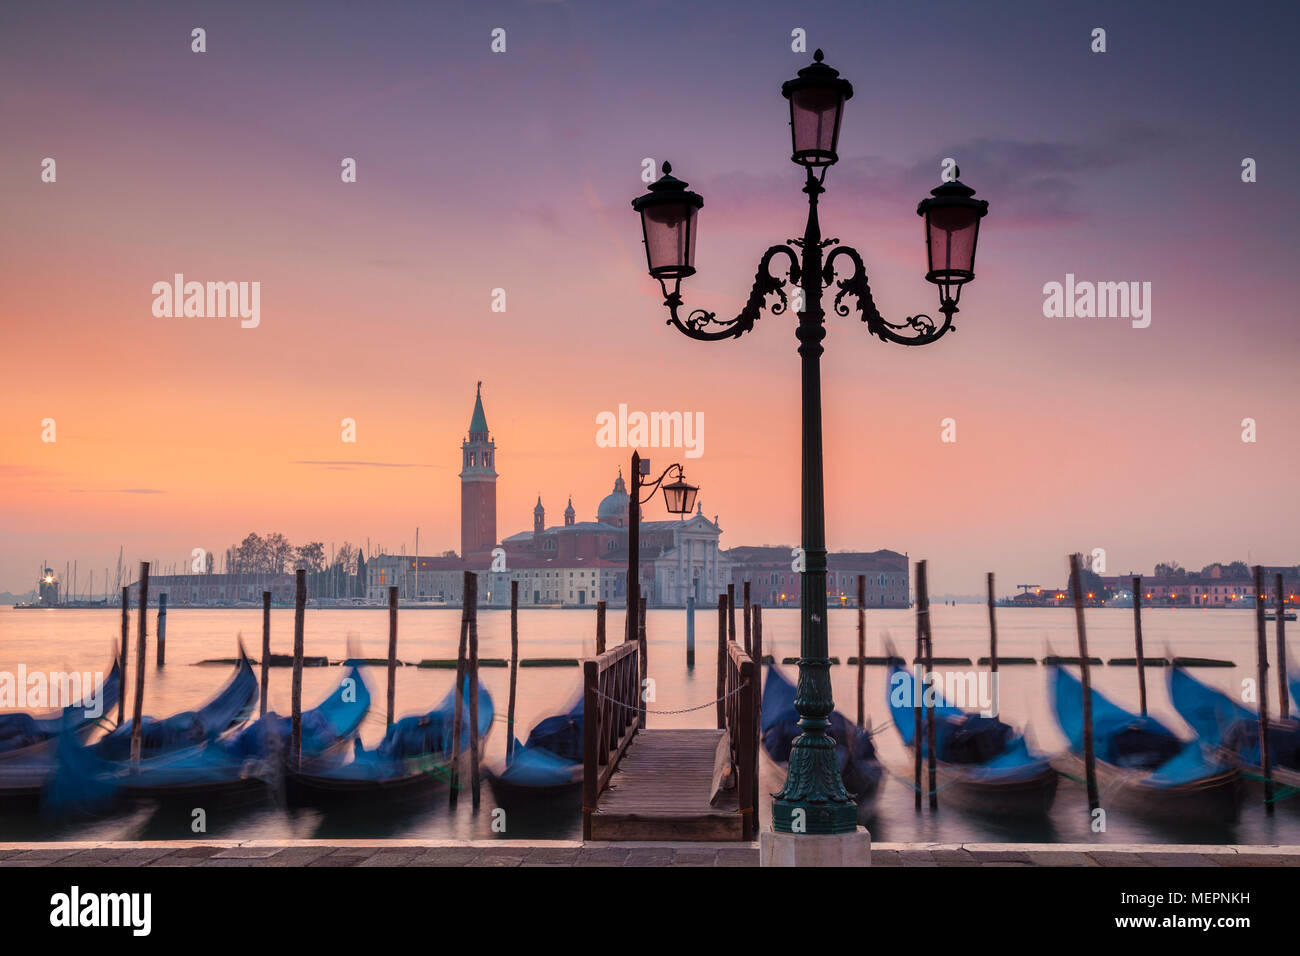 Misty morning over Venice, Italy - Stock Image